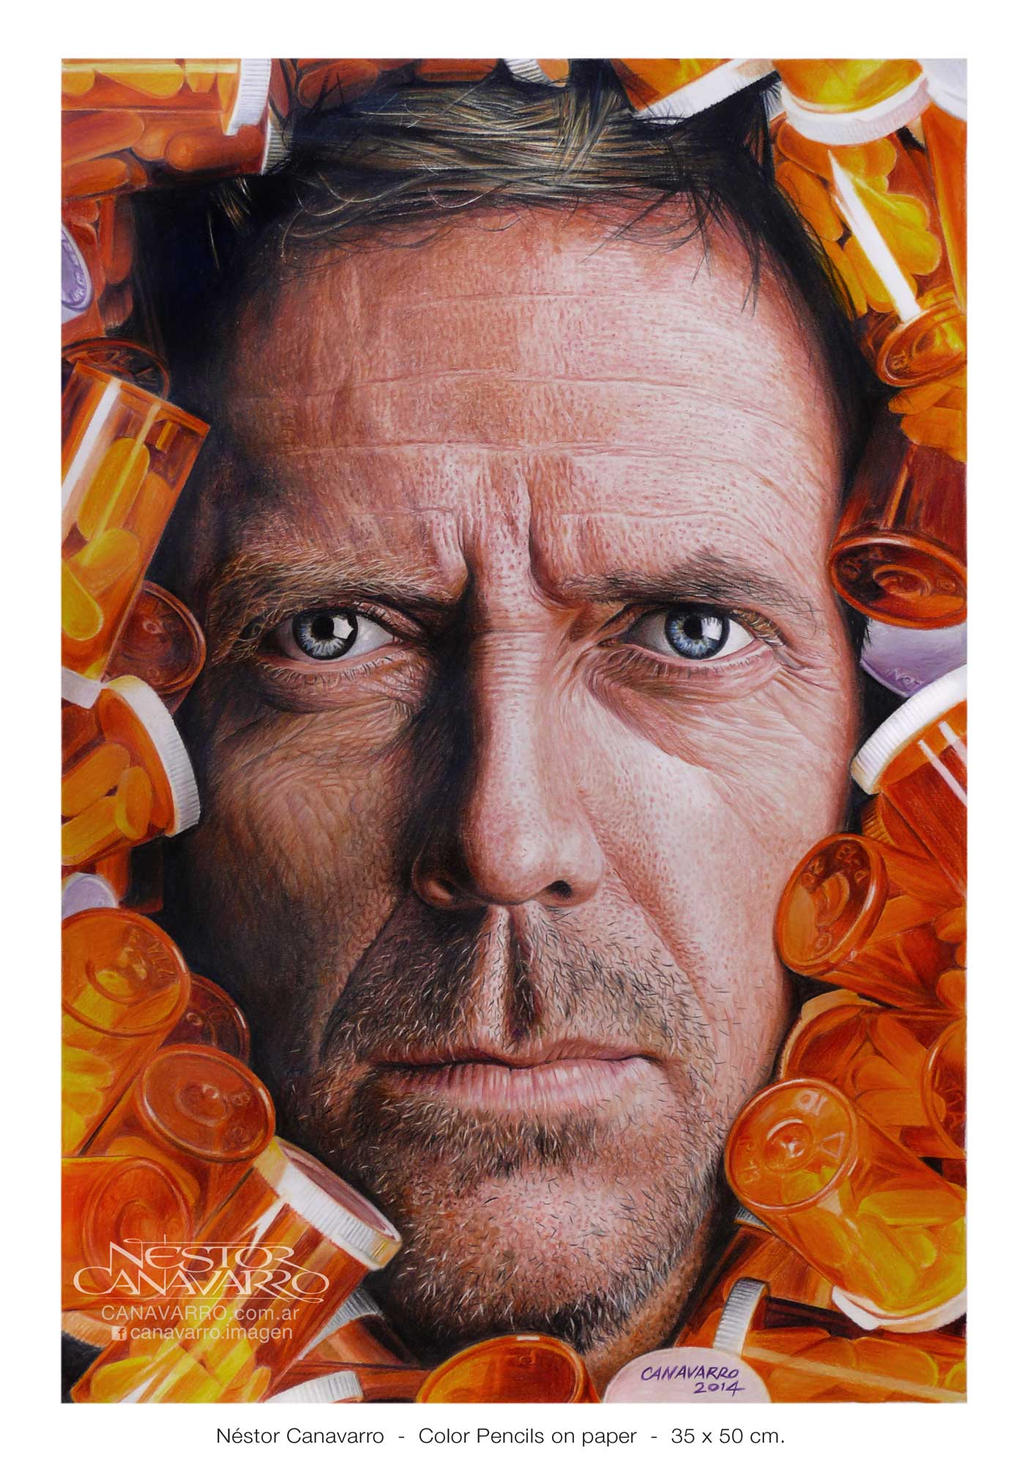 House MD - Hugh Laurie in color pencils by NestorCanavarro